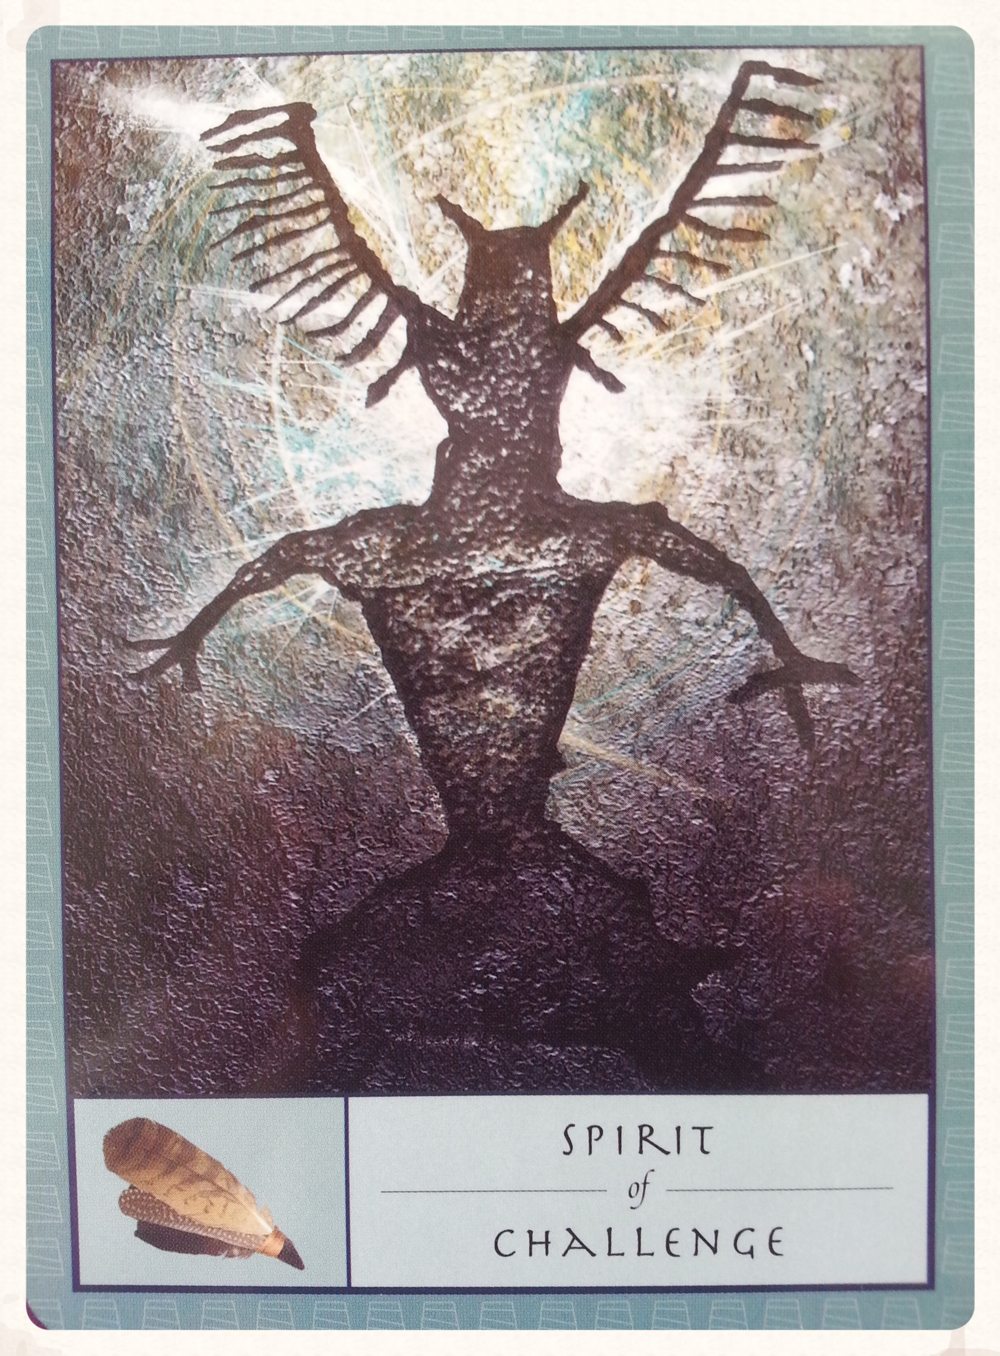 TYR'S DAY SEPTEMBER 8TH 2015: TRANSFORMATIVE FORCES IN DAILY LIFE